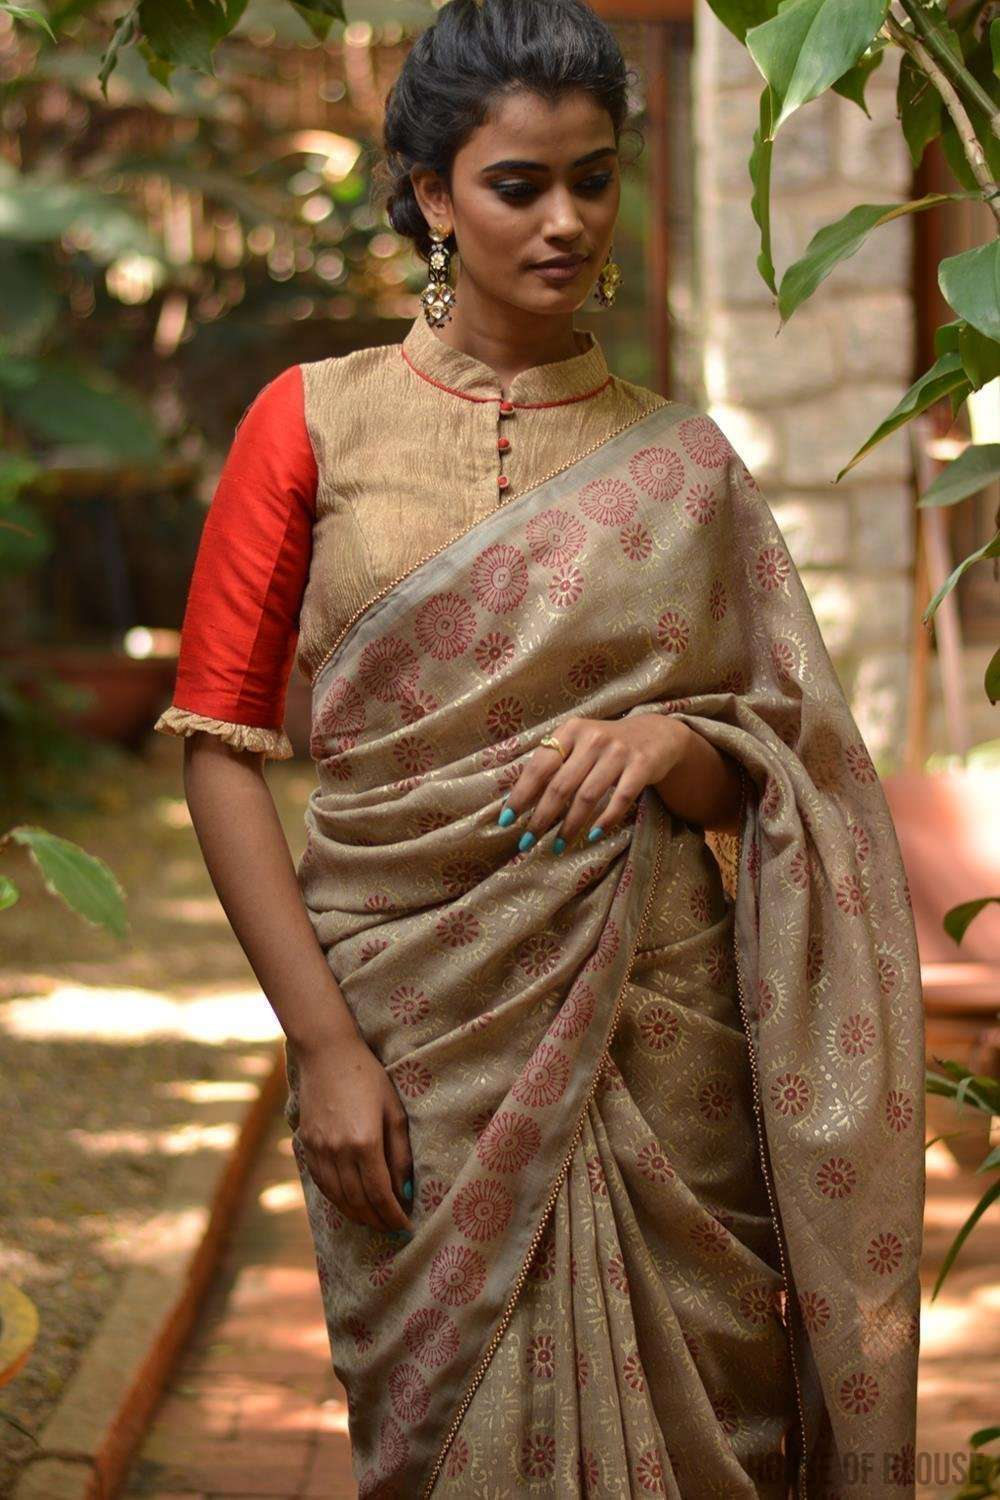 Beige soft linen saree with maroon and gold block print, tissue edging and gold bead edging